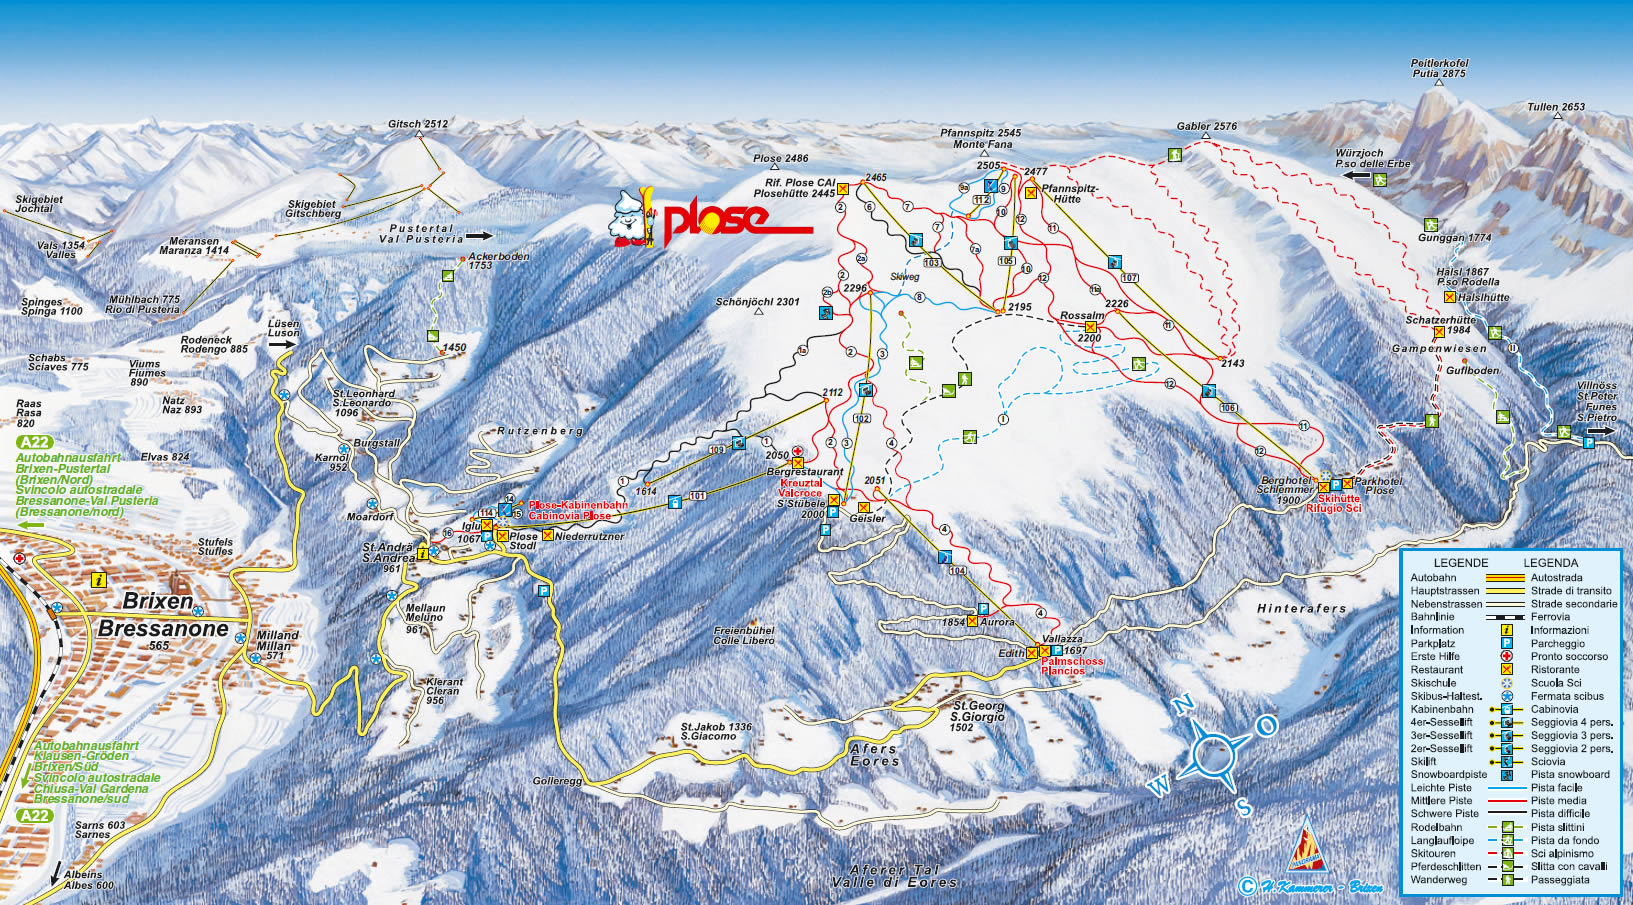 Plose Brixen Piste / Trail Map